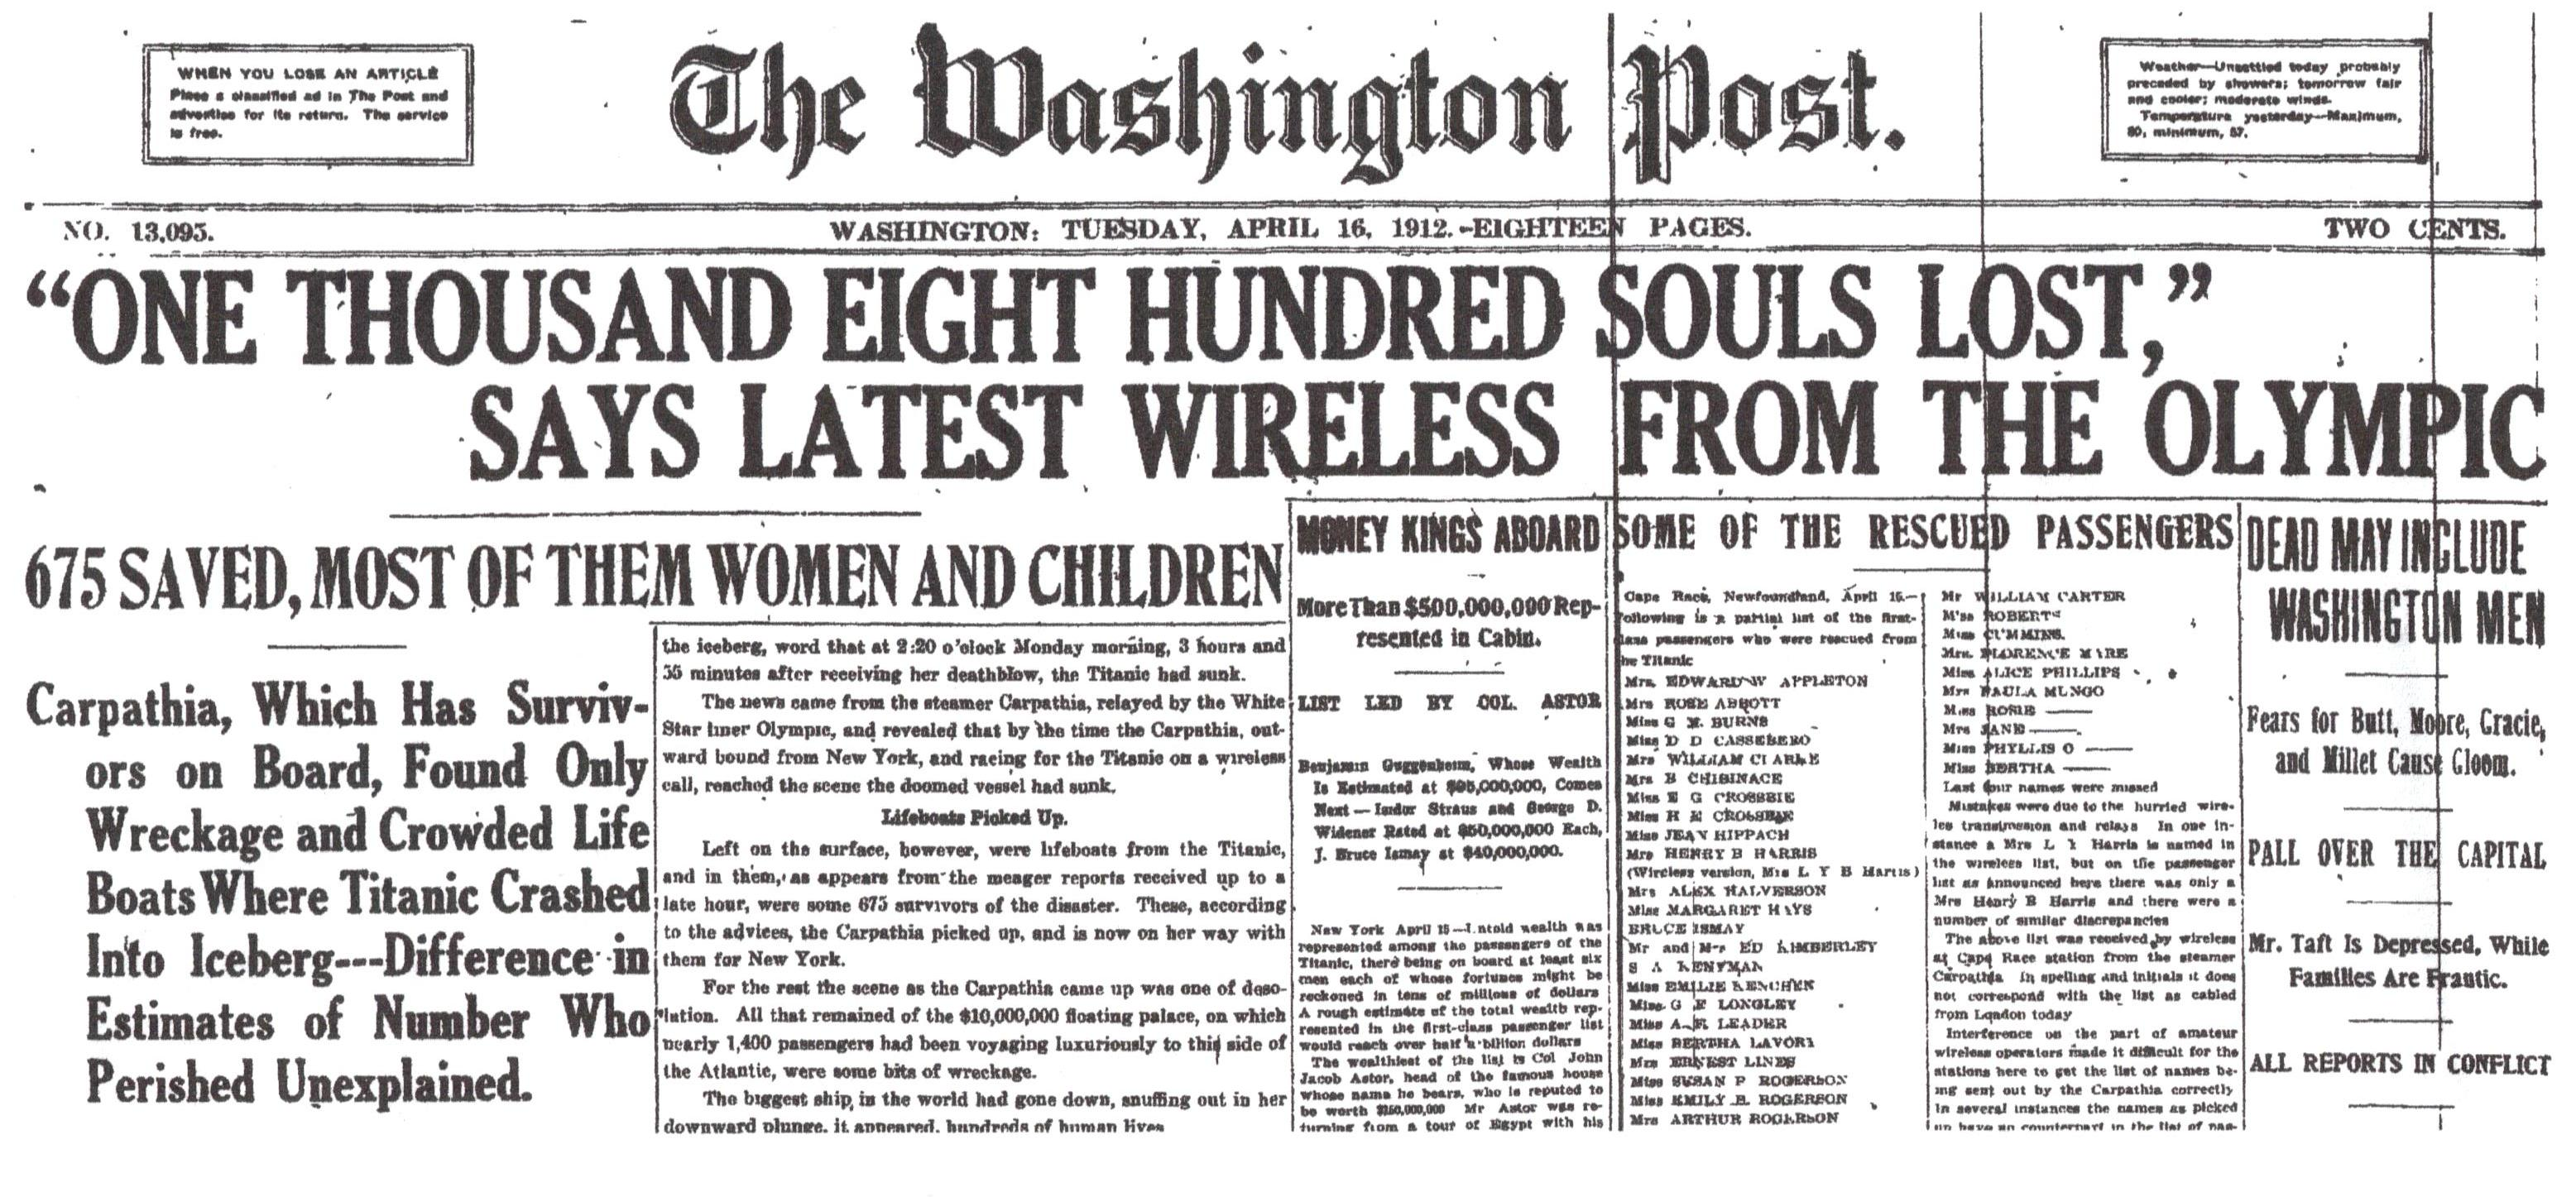 Washington Post, April 16, 1912.